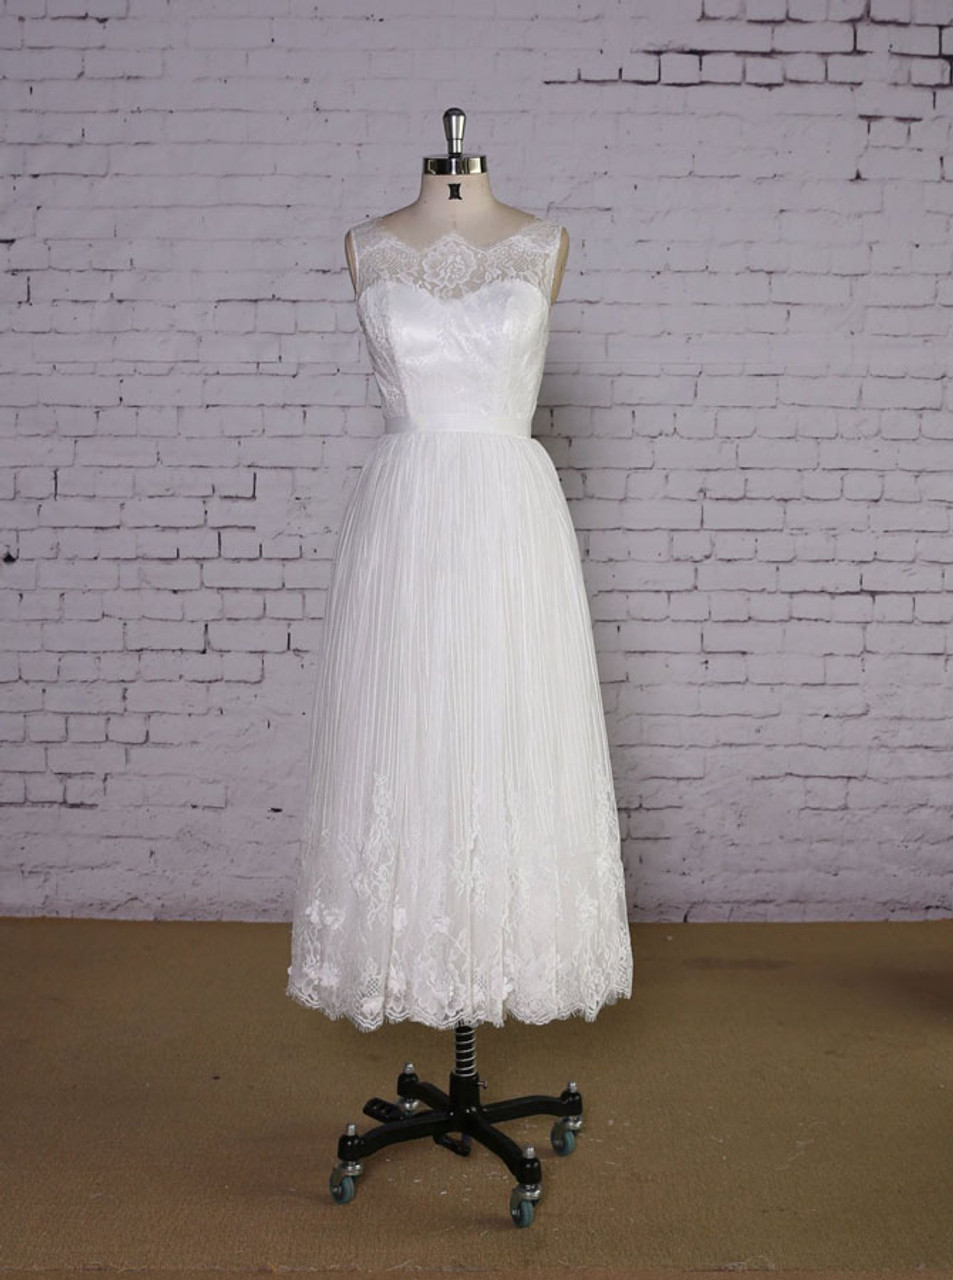 White Lace Tea Length Length Wedding Dress Reception Bridal Dress With A Long Standing Reputation Weddings & Events